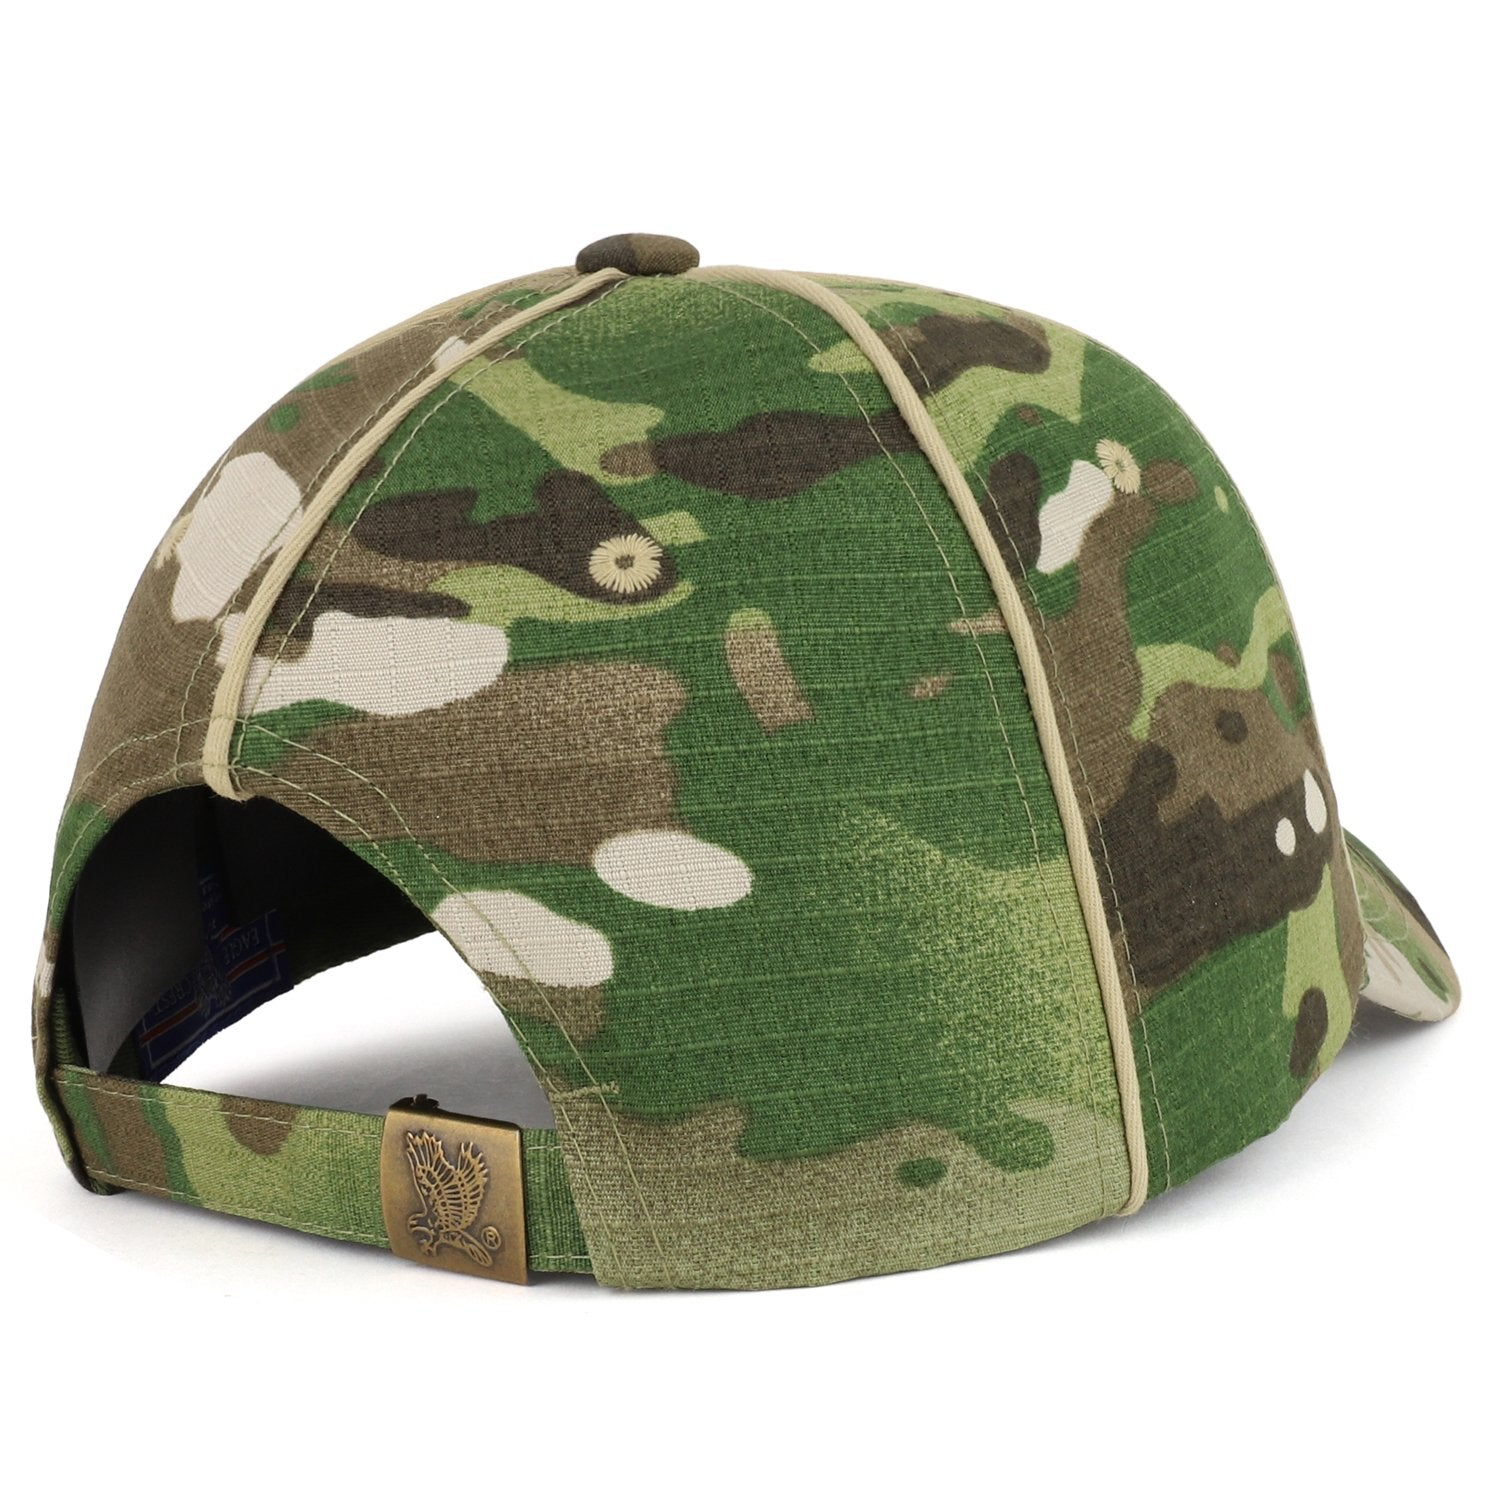 b99c345c0a2 Armycrew Veteran Font 3D Embroidered Camouflage Print Structured Baseball  Cap